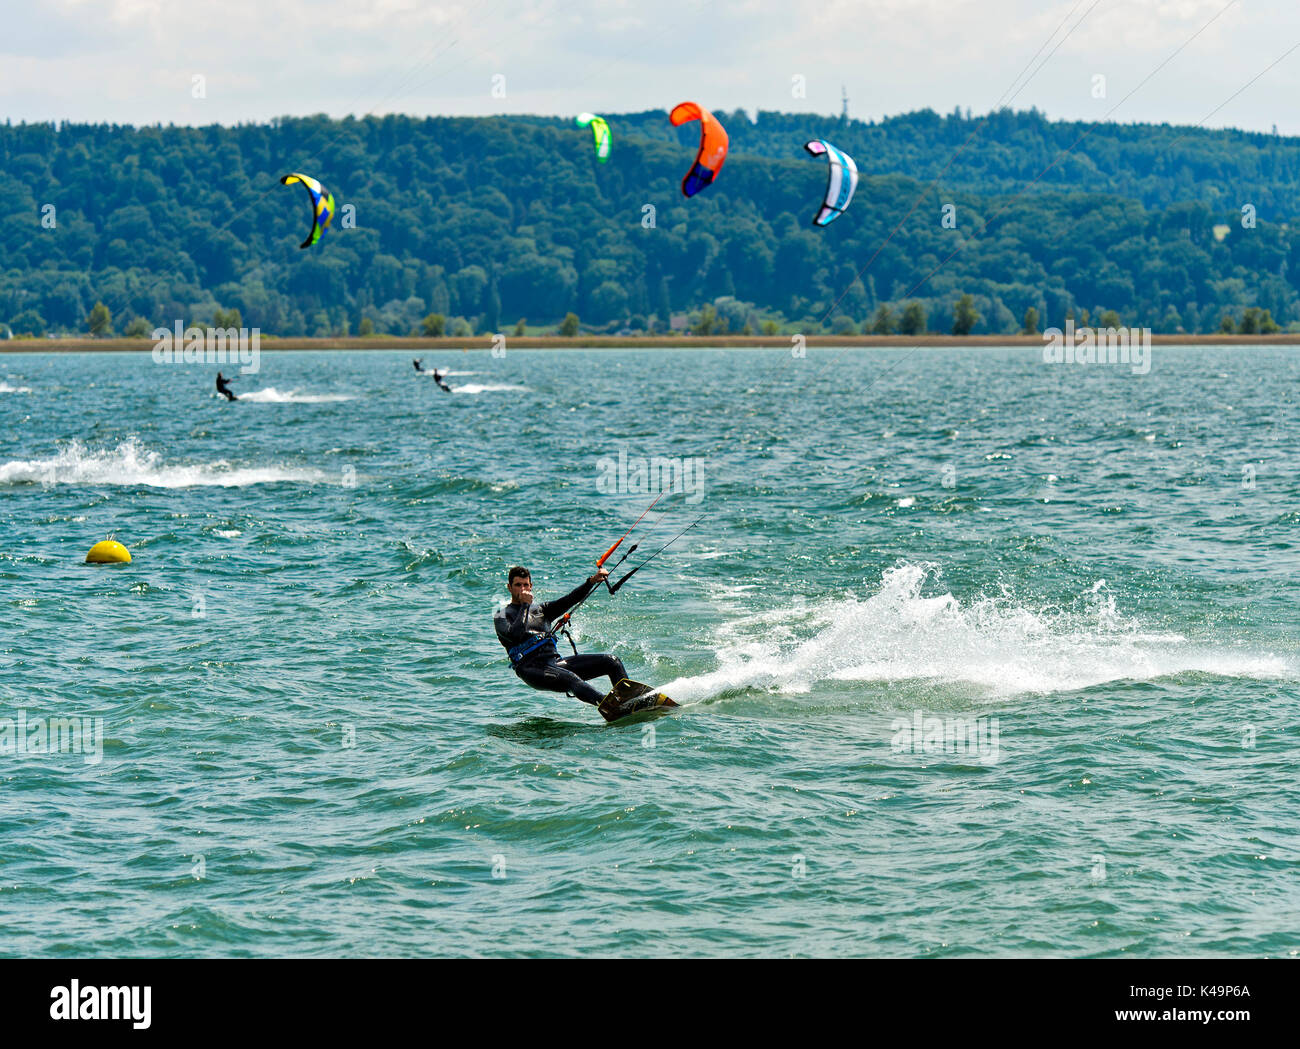 Kitesurfer On Lake Bienne, La Neuville, Switzerland - Stock Image